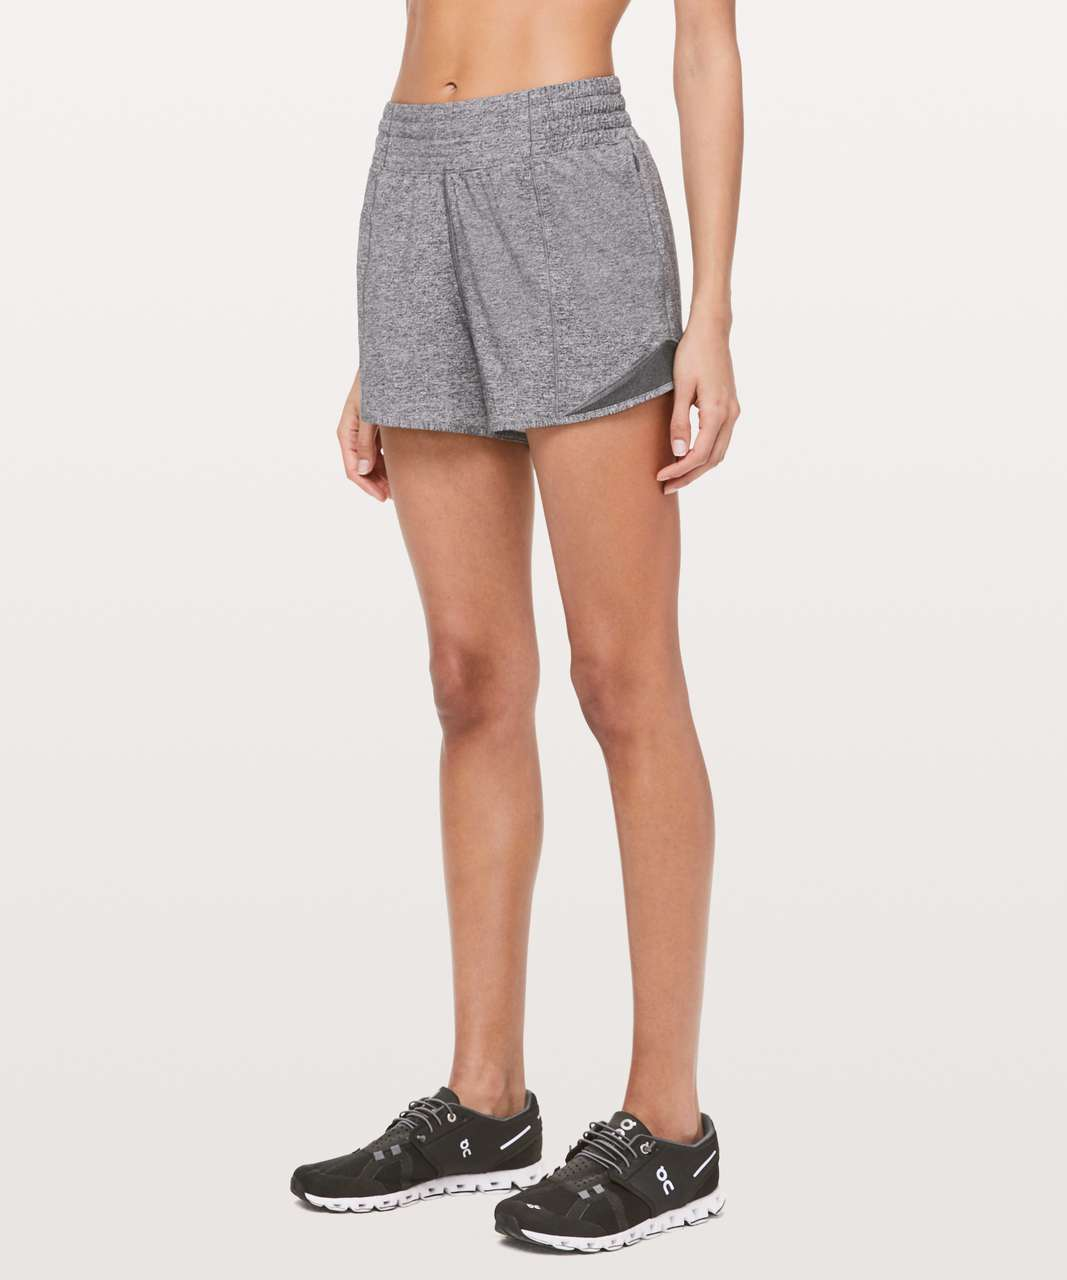 """Lululemon Hotty Hot Short *High-Rise Long 4"""" - Heather Lux Multi Black / Heathered Black (First Release)"""